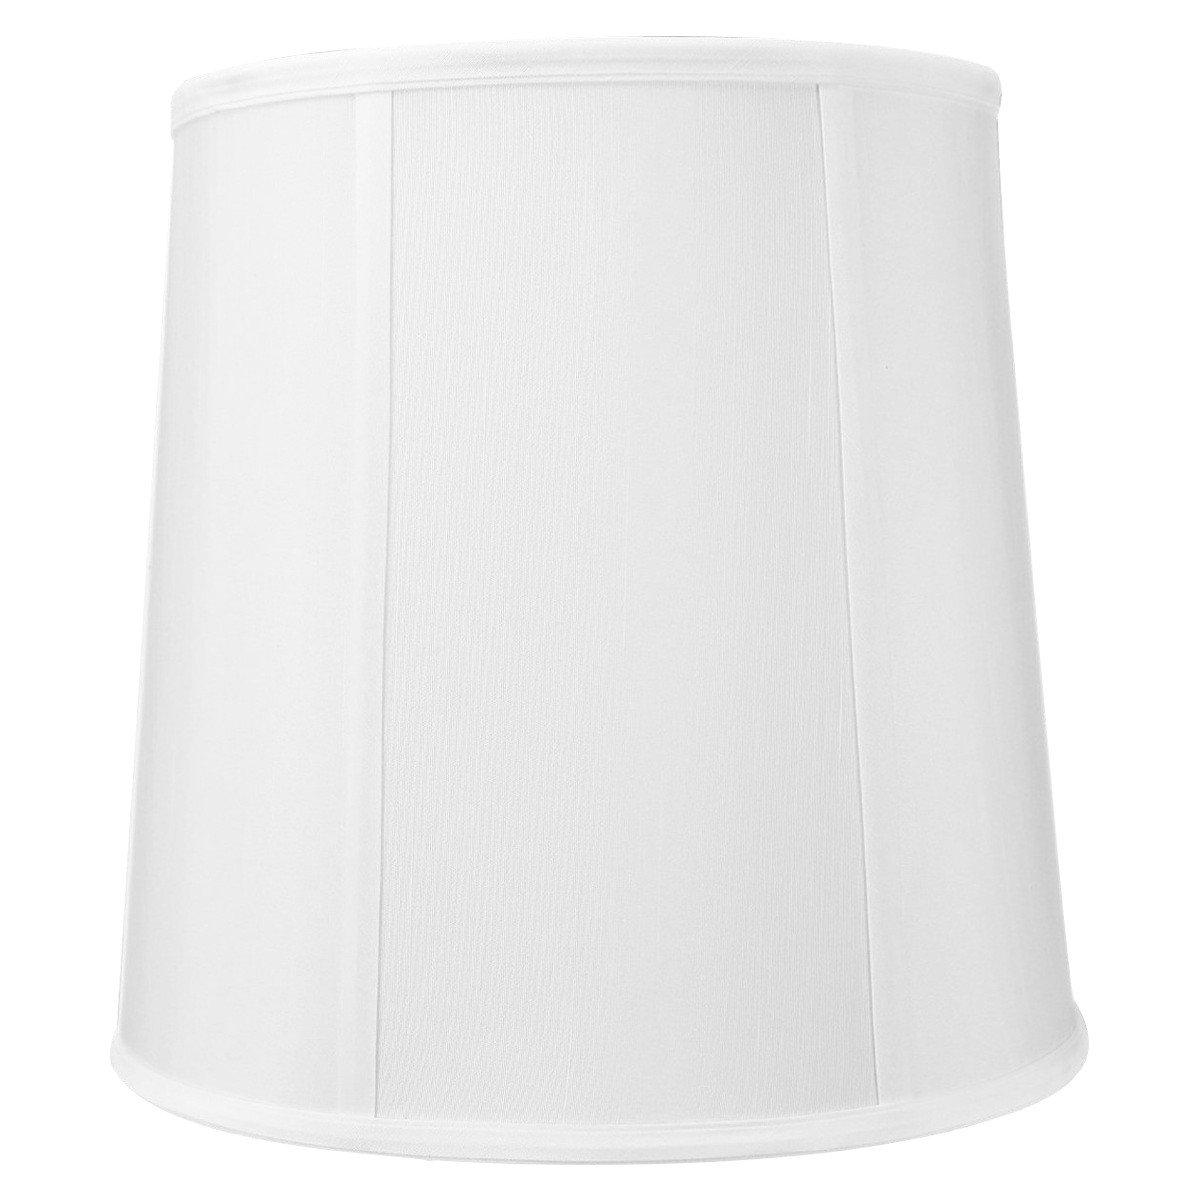 10x12x12 White Linen Fabric Drum Lampshade with Brass Spider fitter By Home Concept - Perfect for table and desk lamps - Medium, White